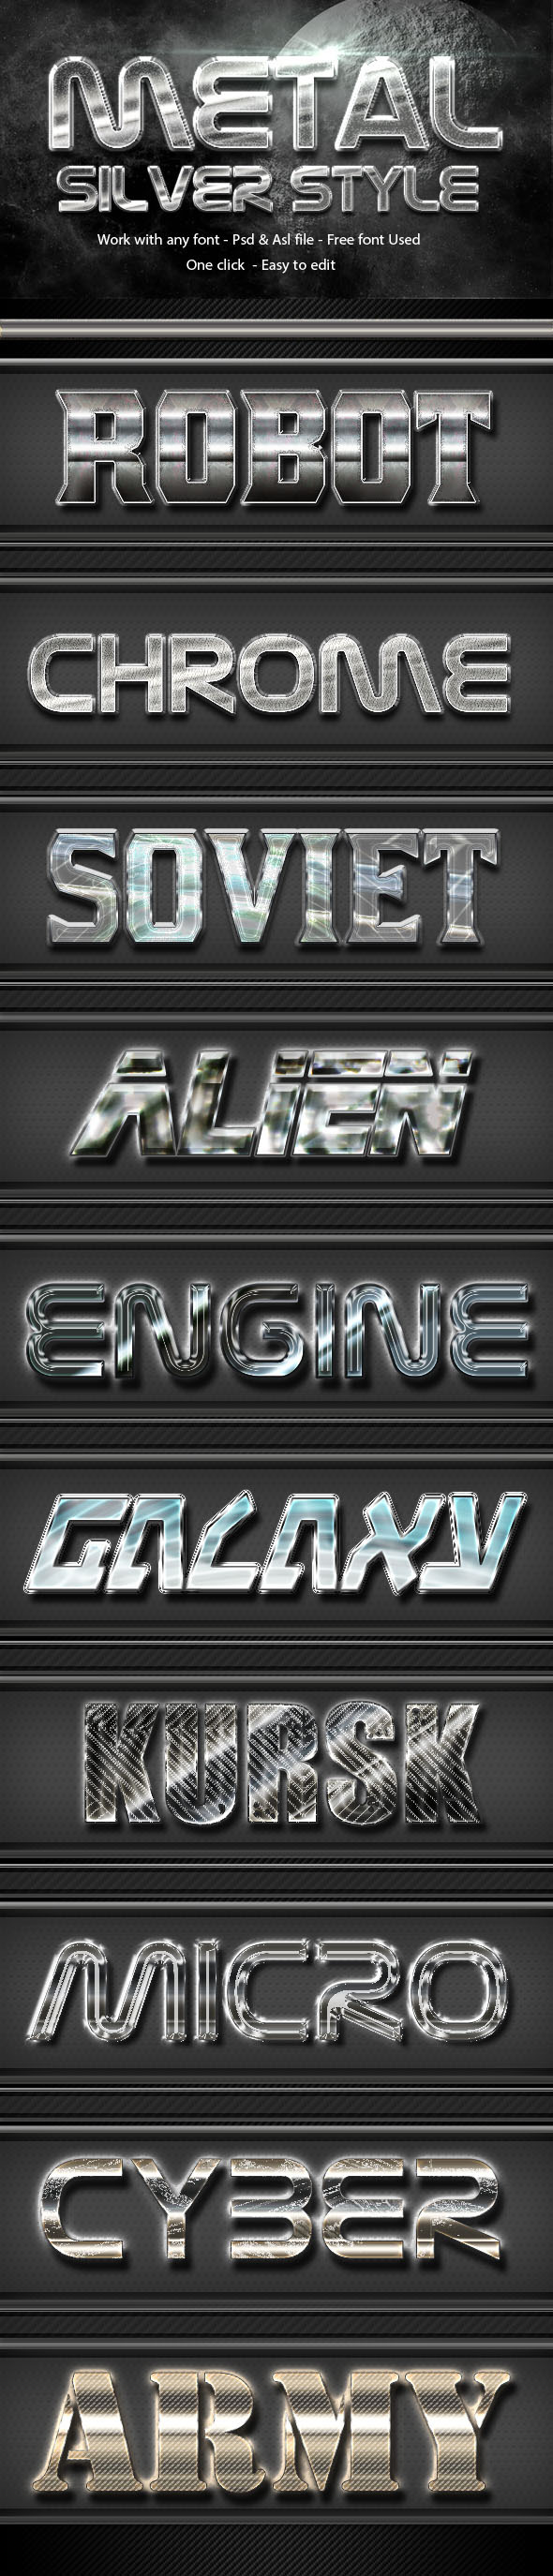 Metal Silver Text Effect Style  Vol 1 - Text Effects Styles